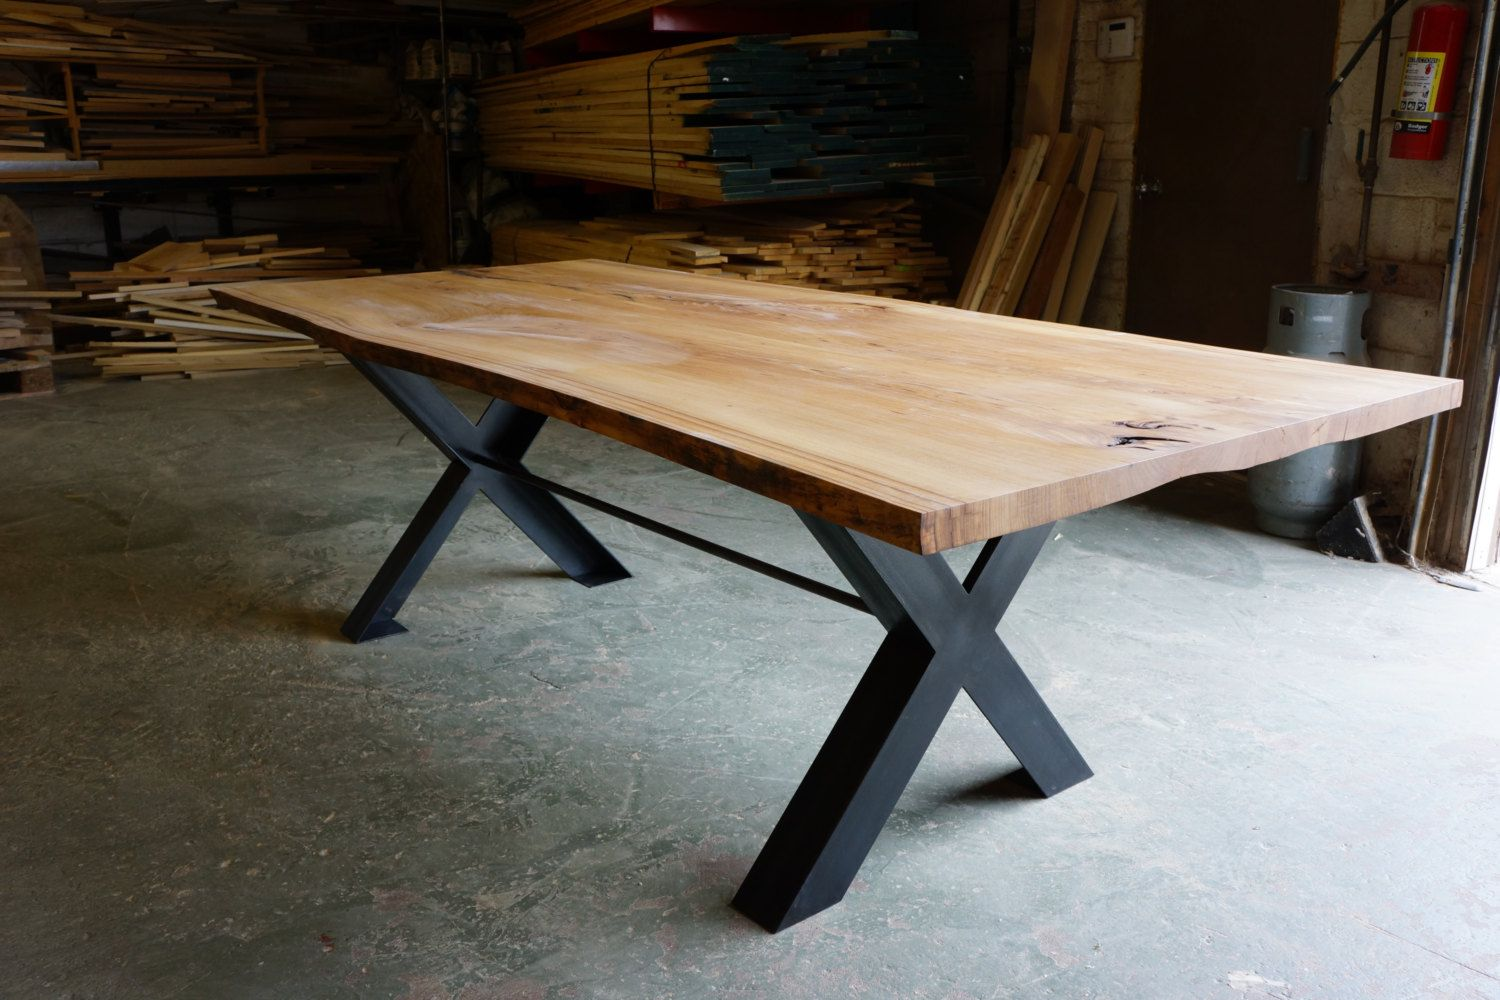 Reclaimed Wood Live Edge Dining Table By Moss Design Urban